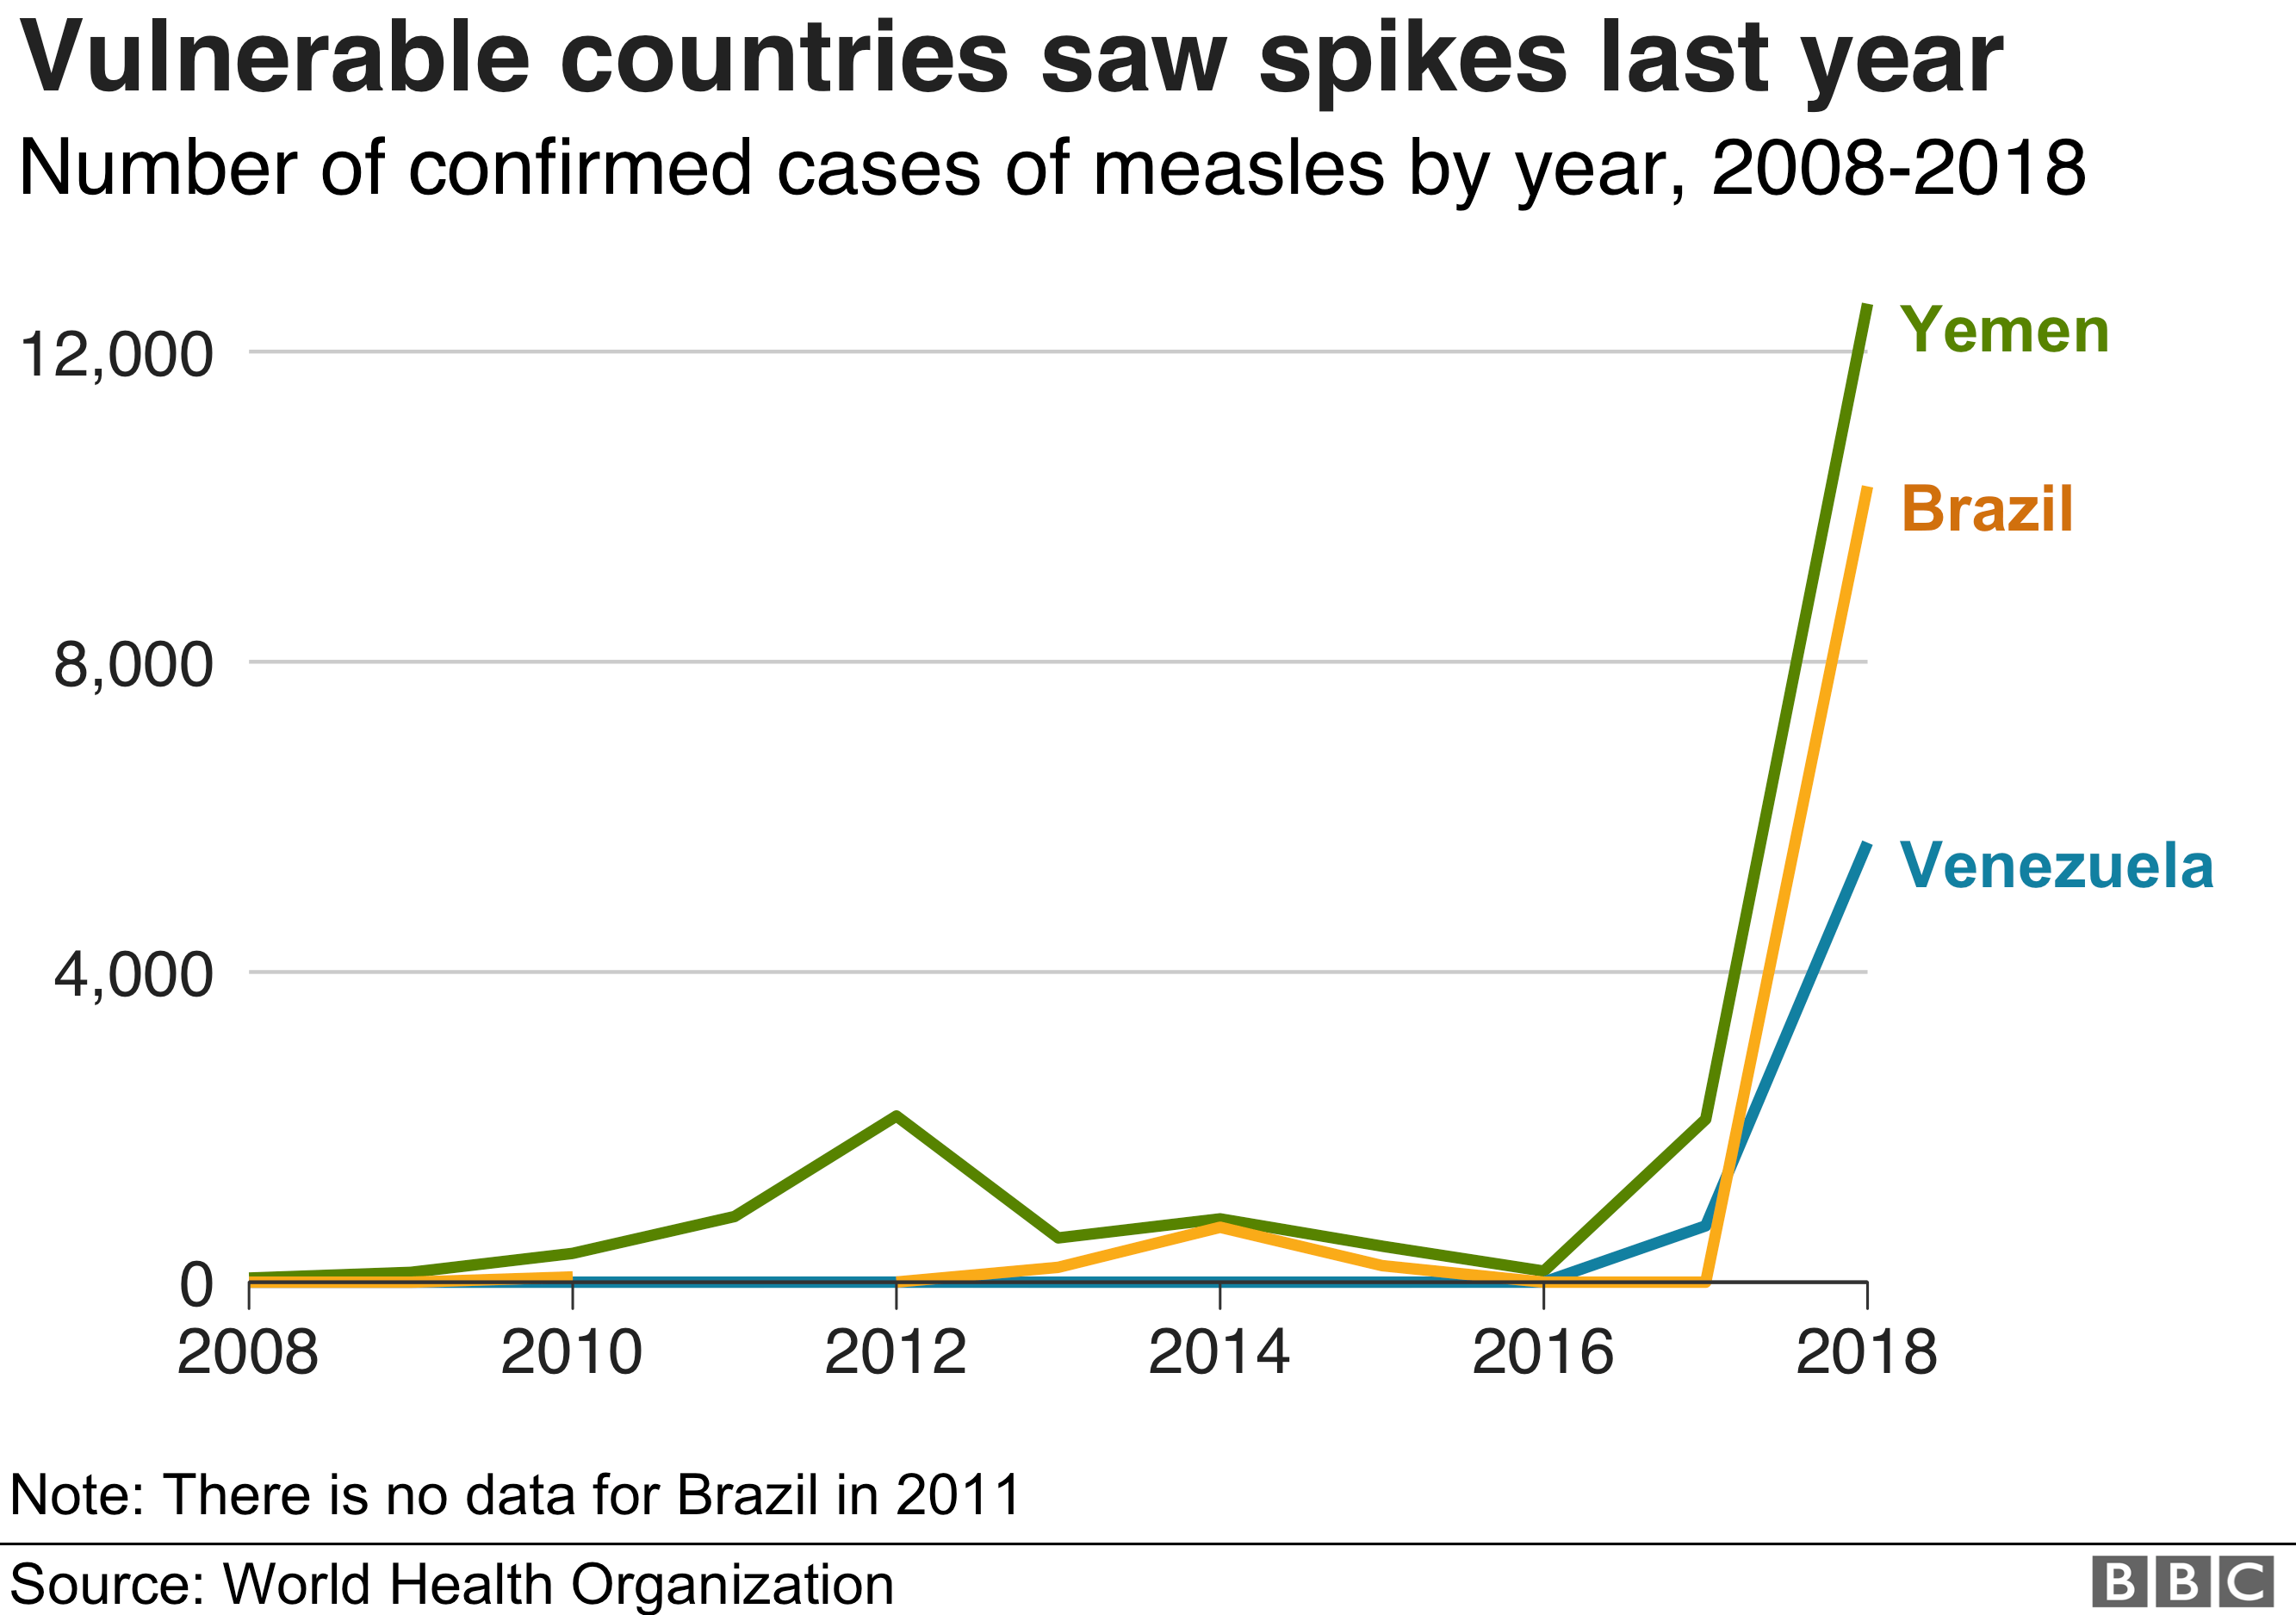 Vulnerable countries saw measles spikes last year